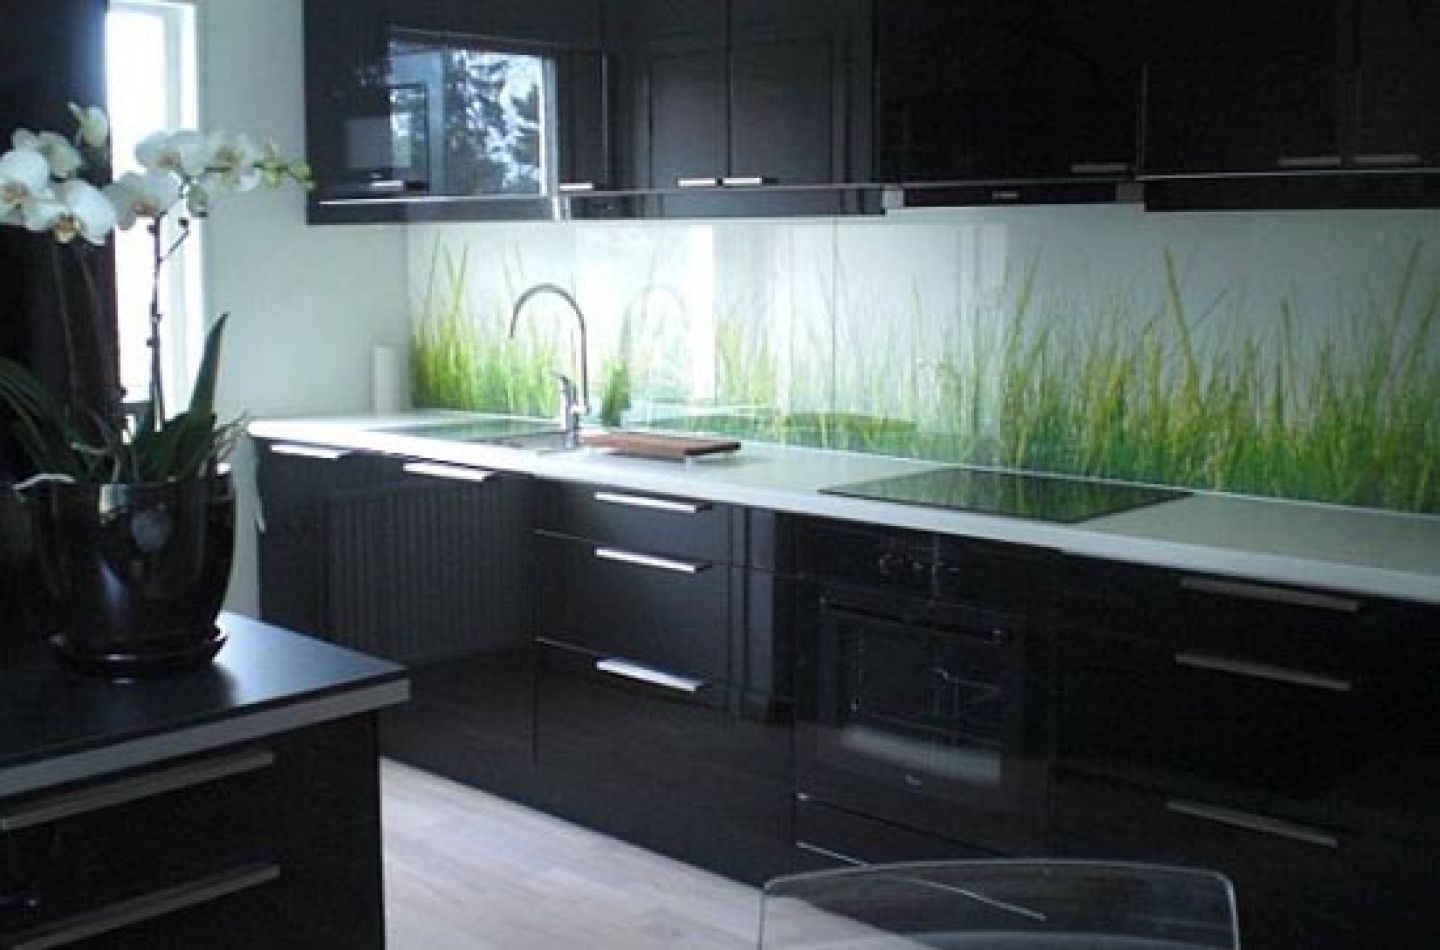 Dark Cabinets  Black Black Cabinets Cabin Cabinet Design Interesting Kitchen Design S Inspiration